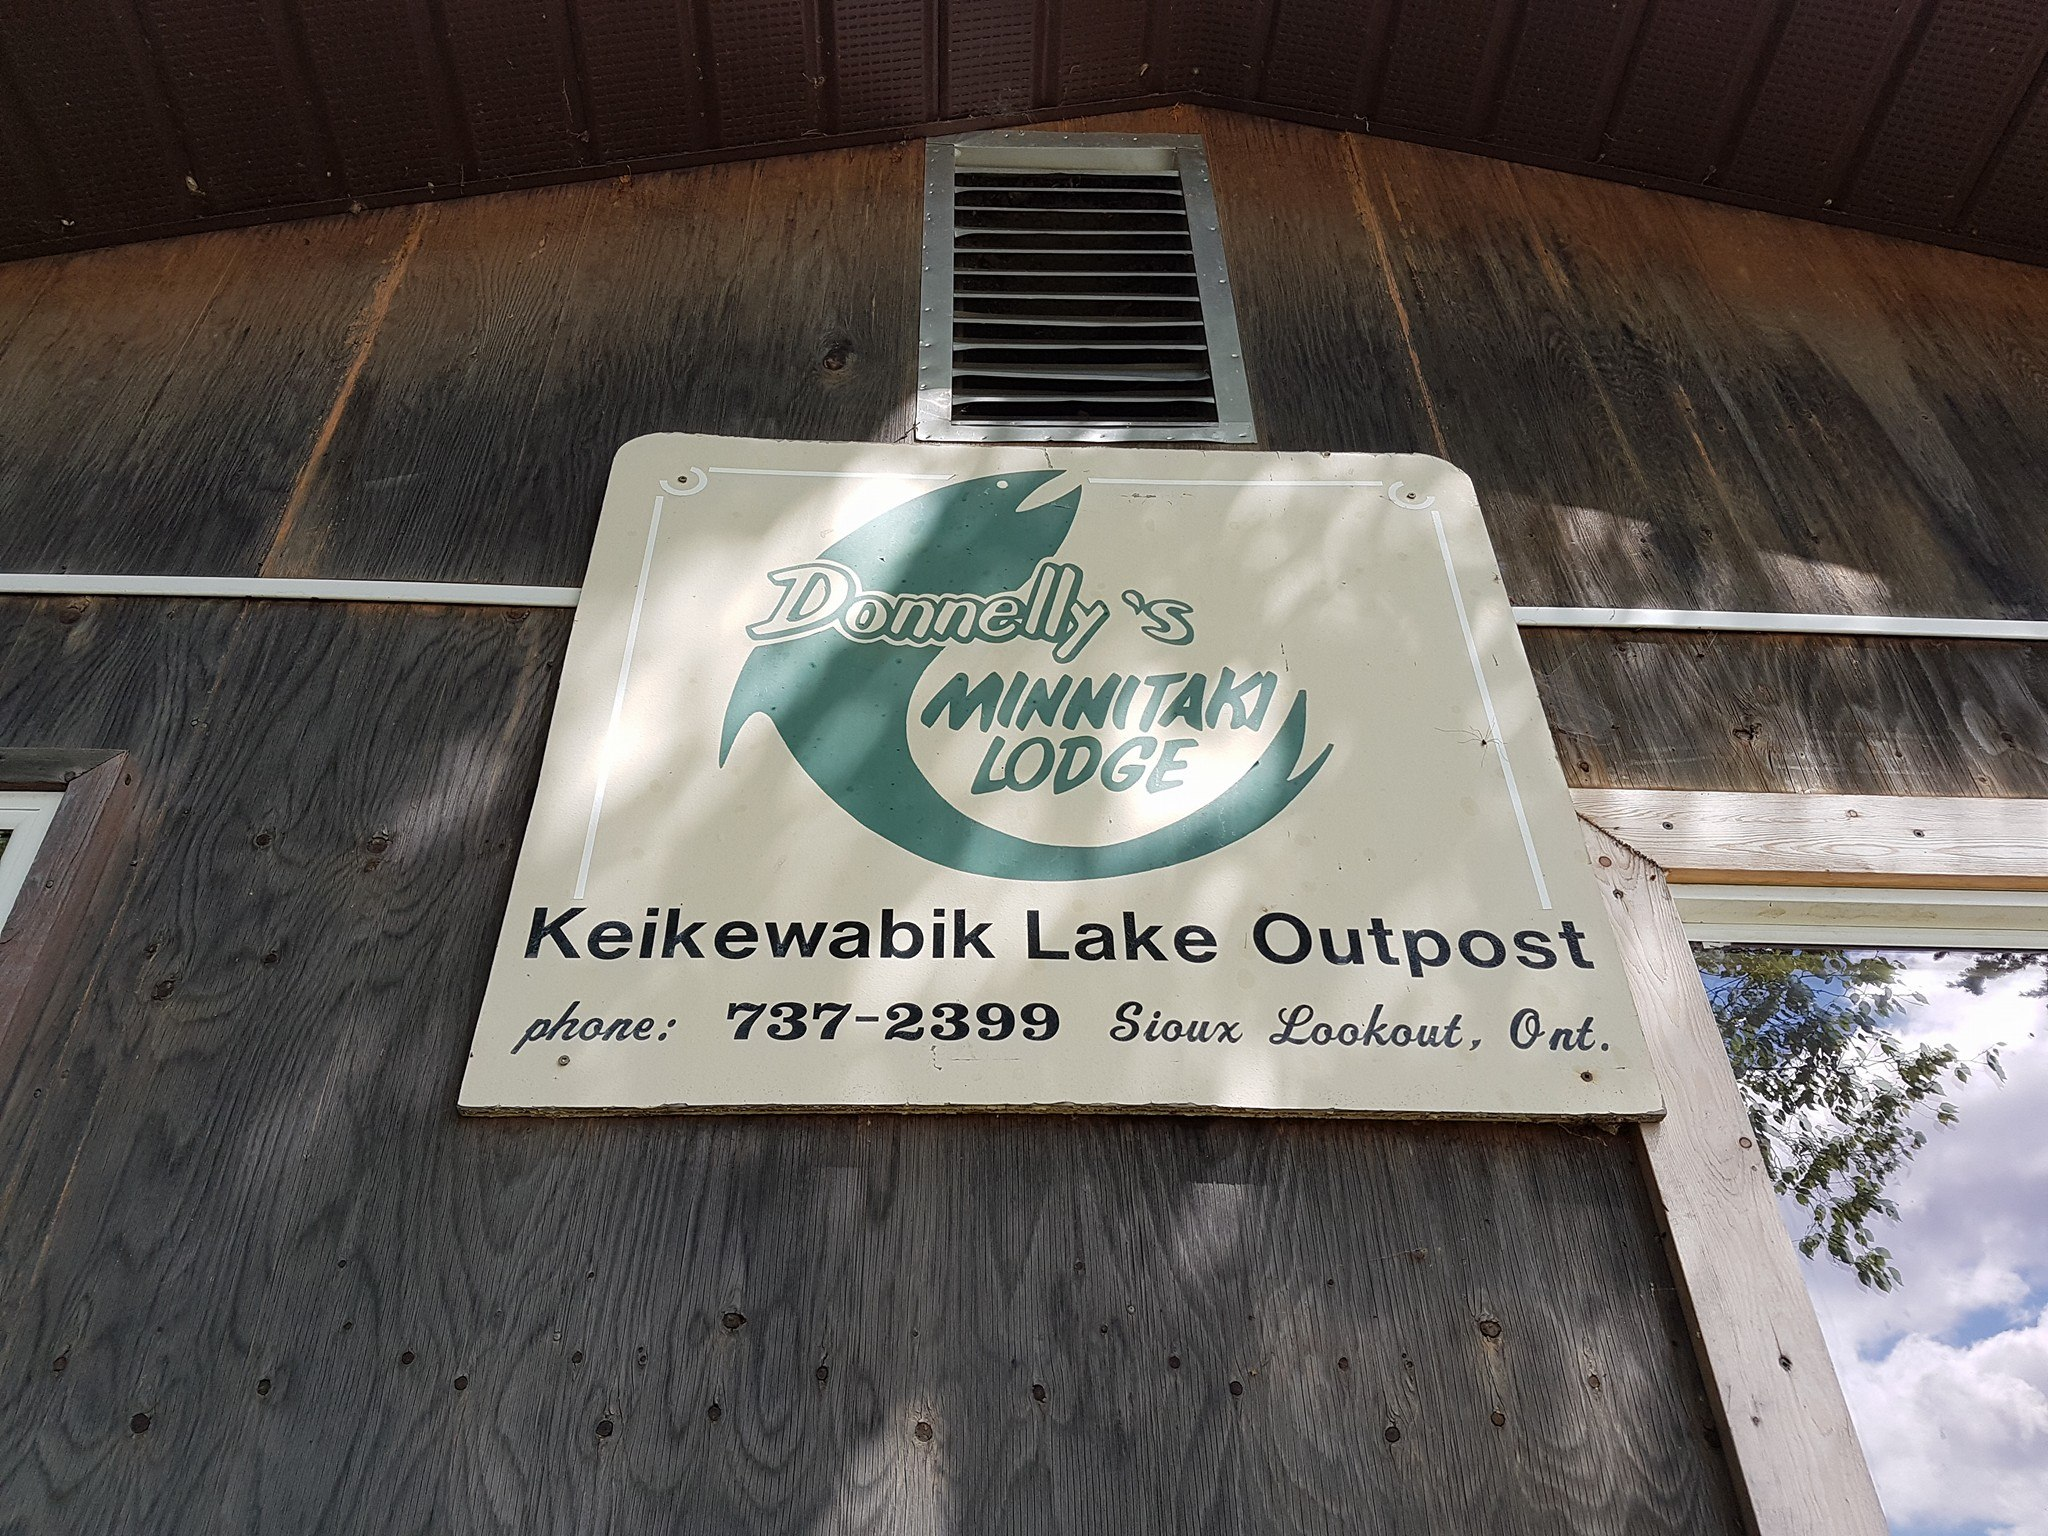 Donnelly's Minnitaki Lodge Keikewabik Lake Outpost